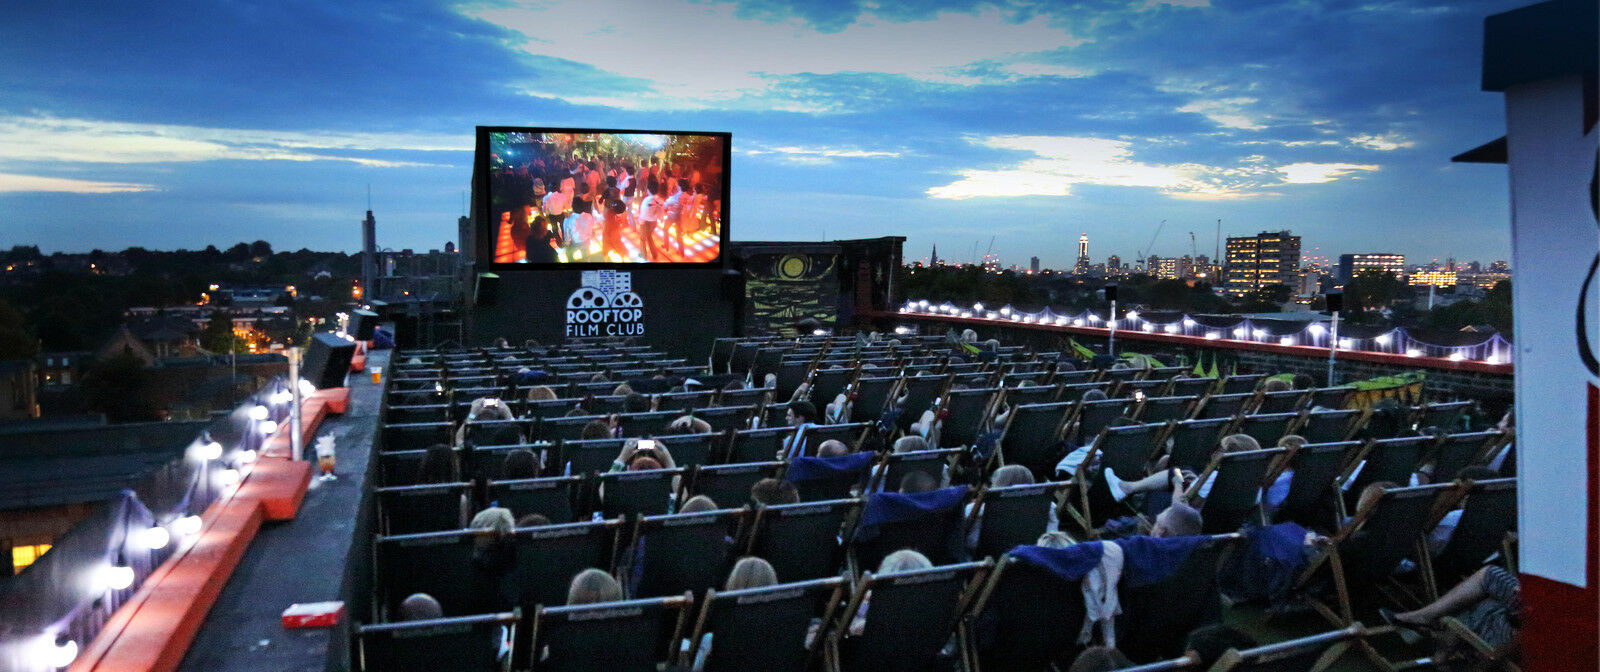 Rooftop Cinema - L.A. Confidential